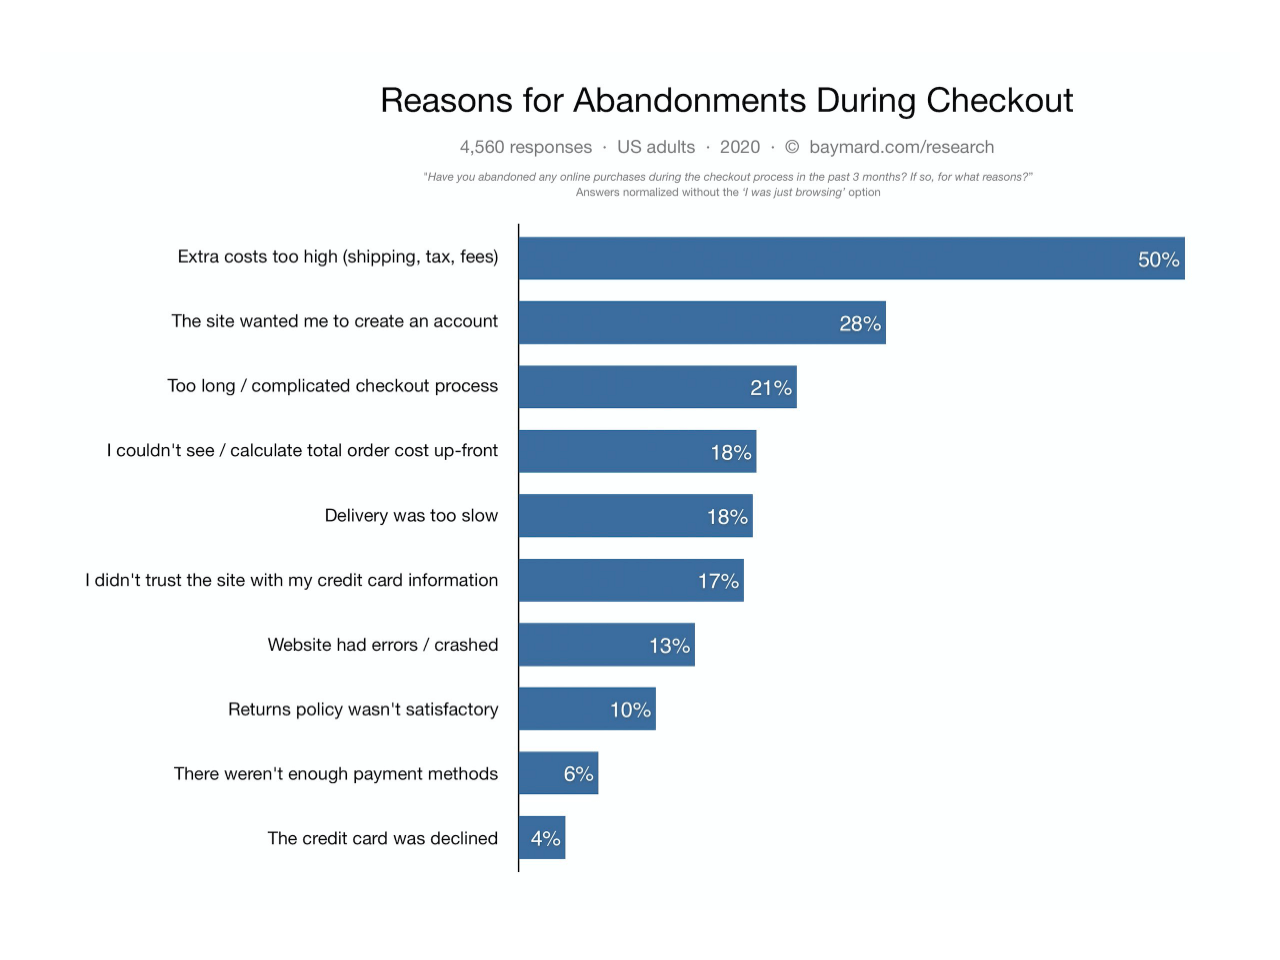 Most common reasons for shopping cart abandonment during checkout